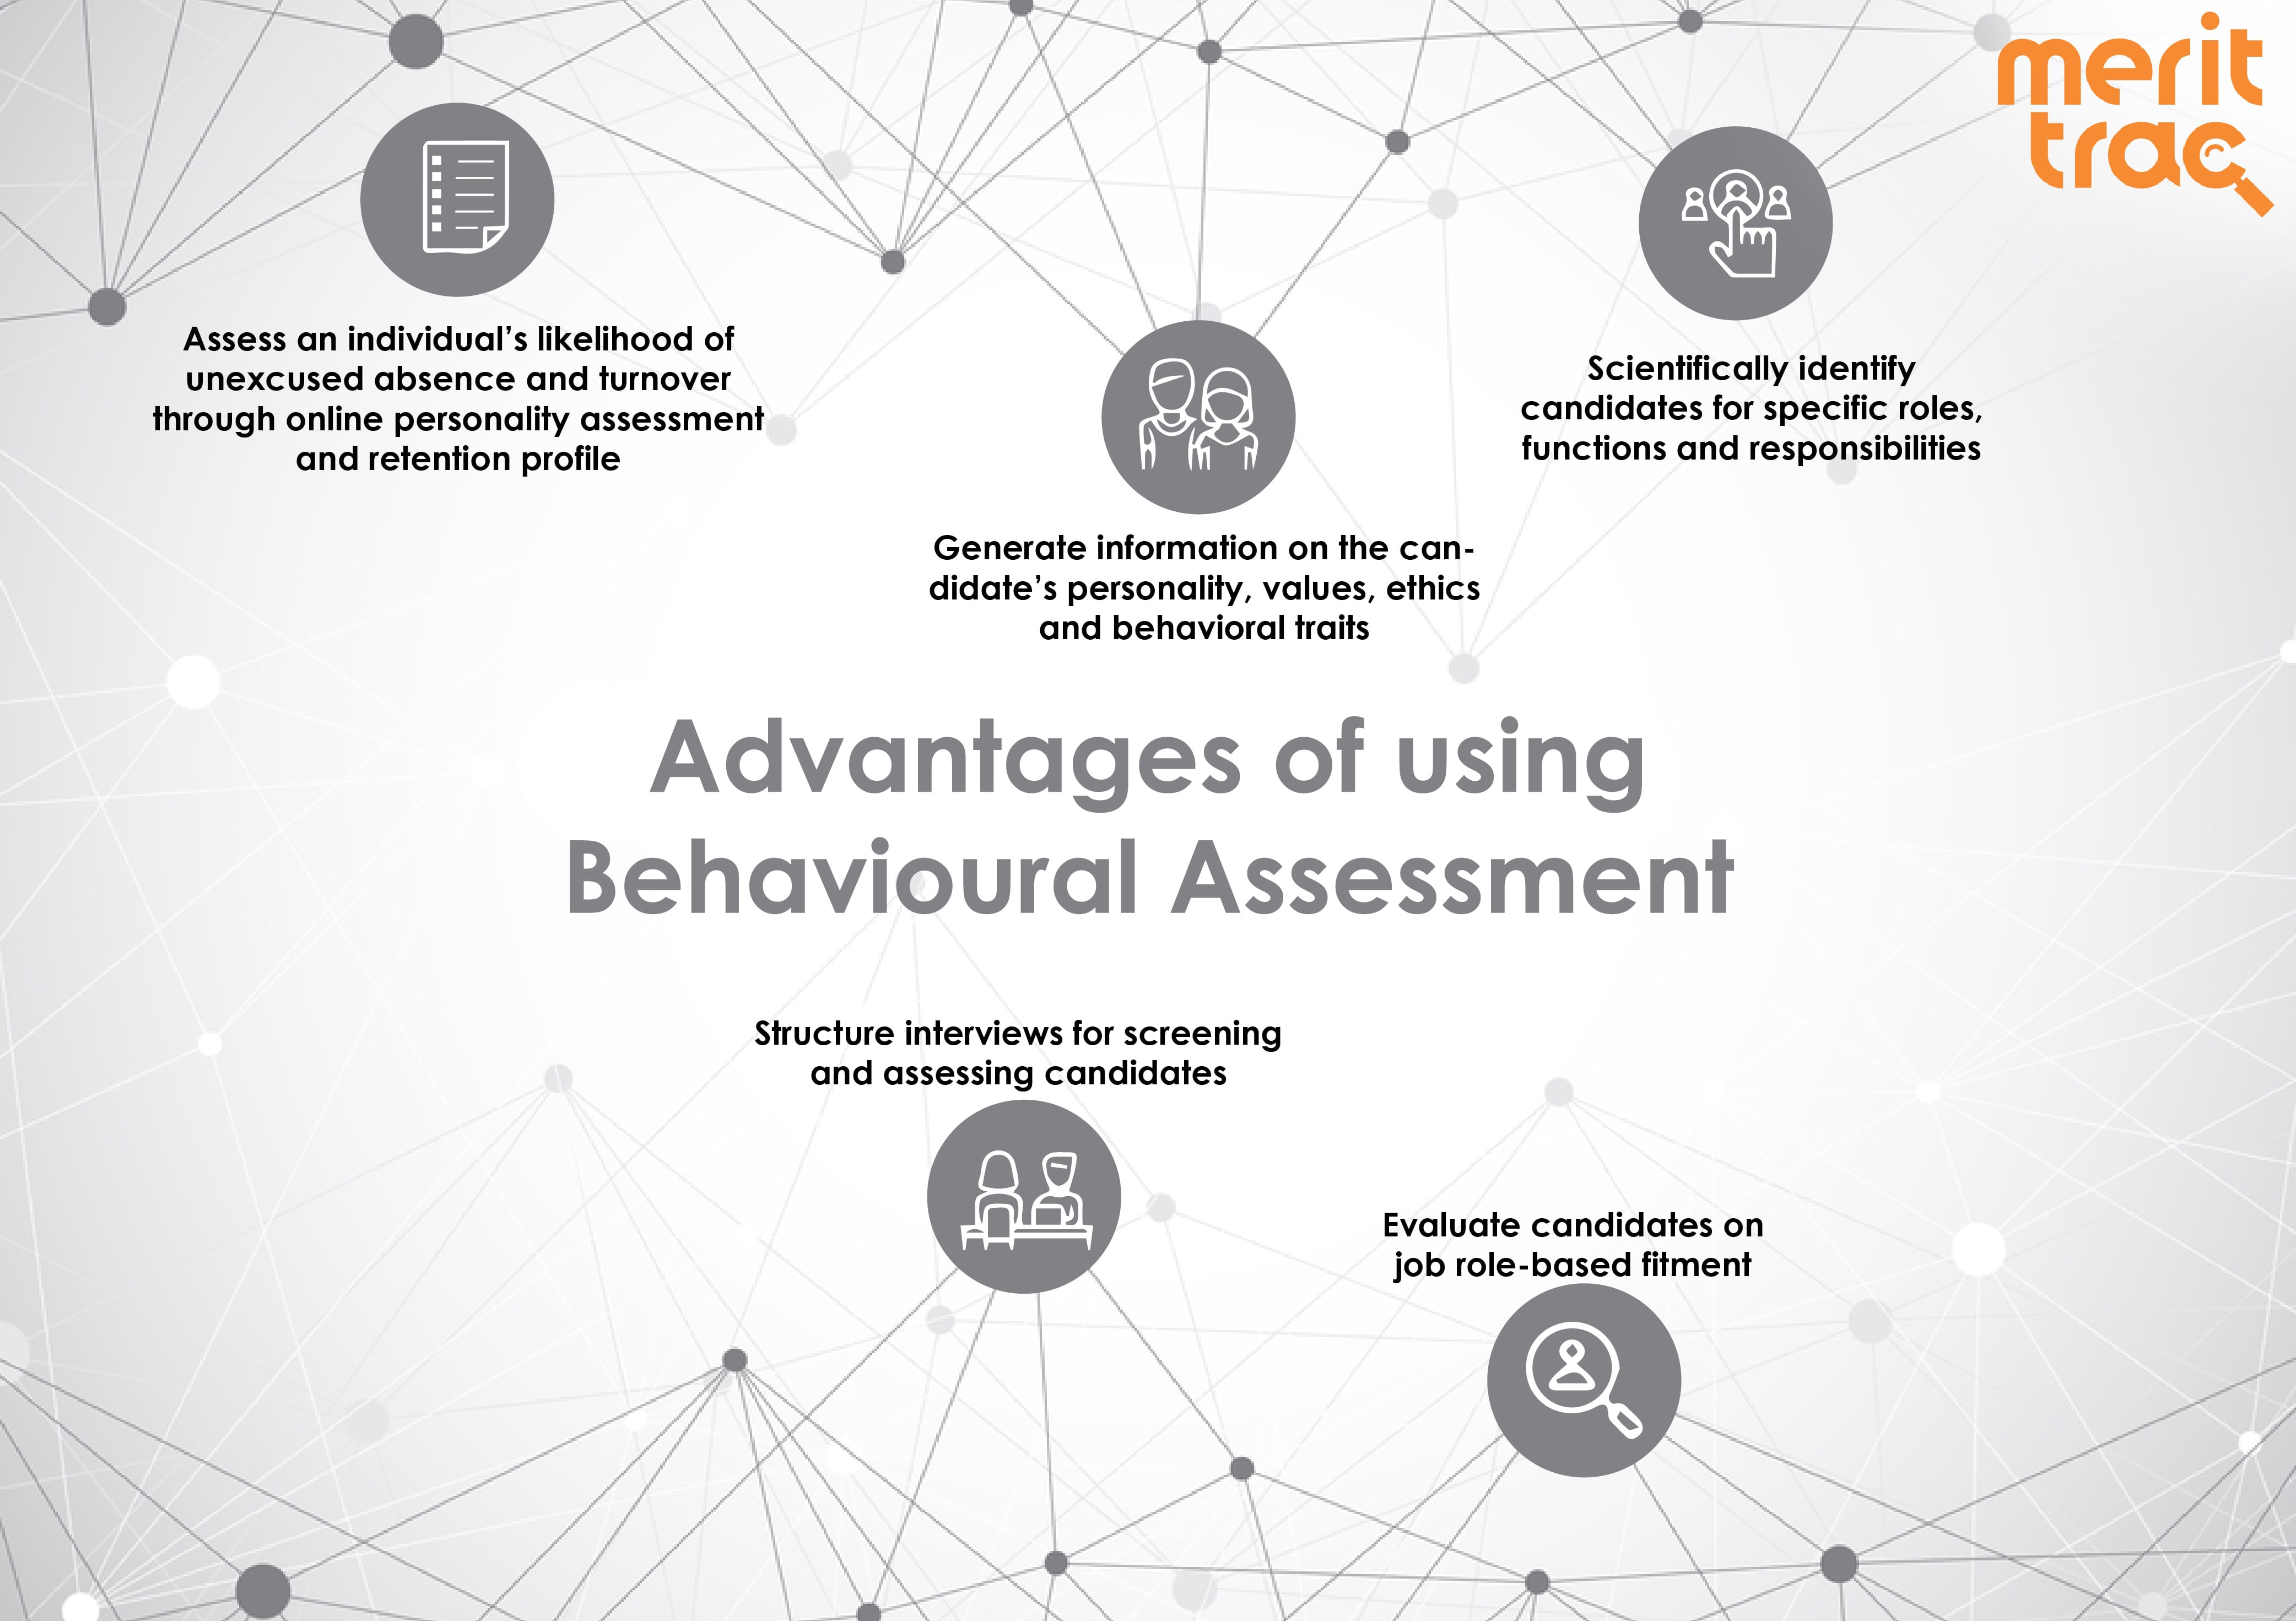 Advantages of using Behavioural Assessment